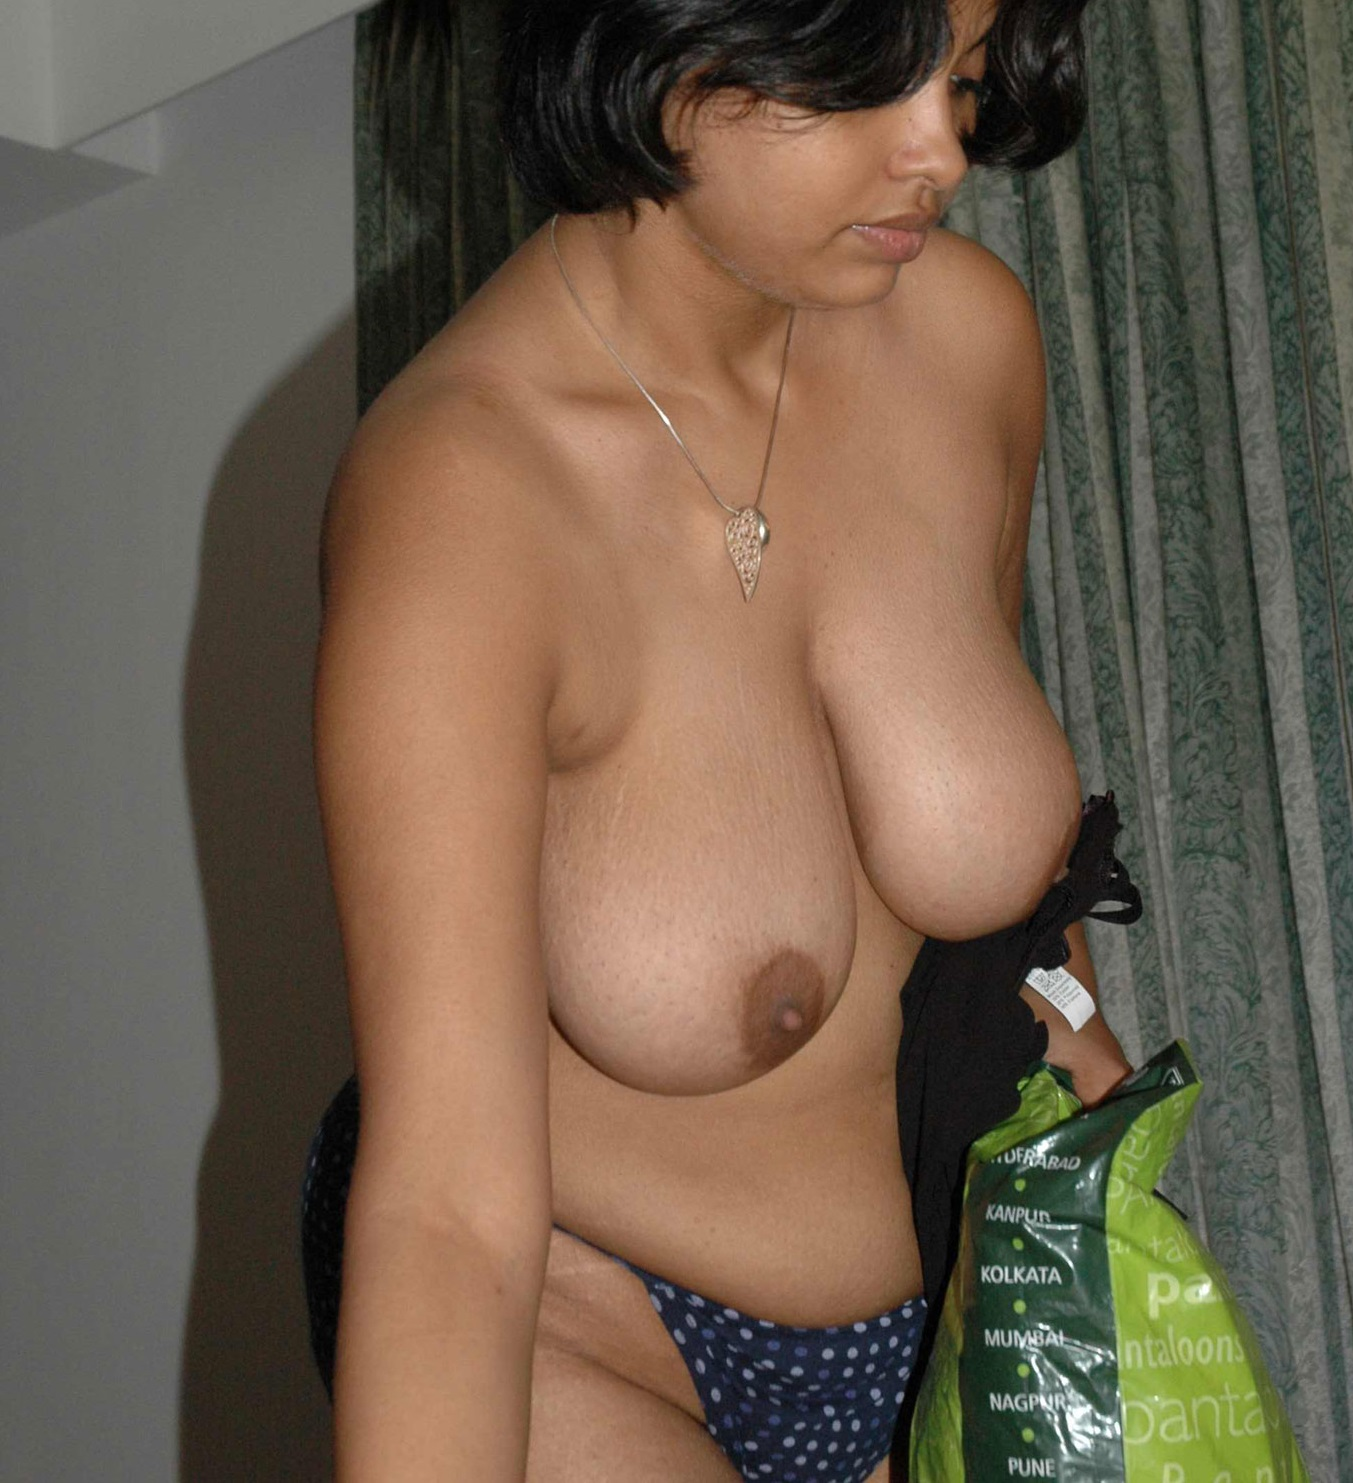 boobs aunty Kolkata nude